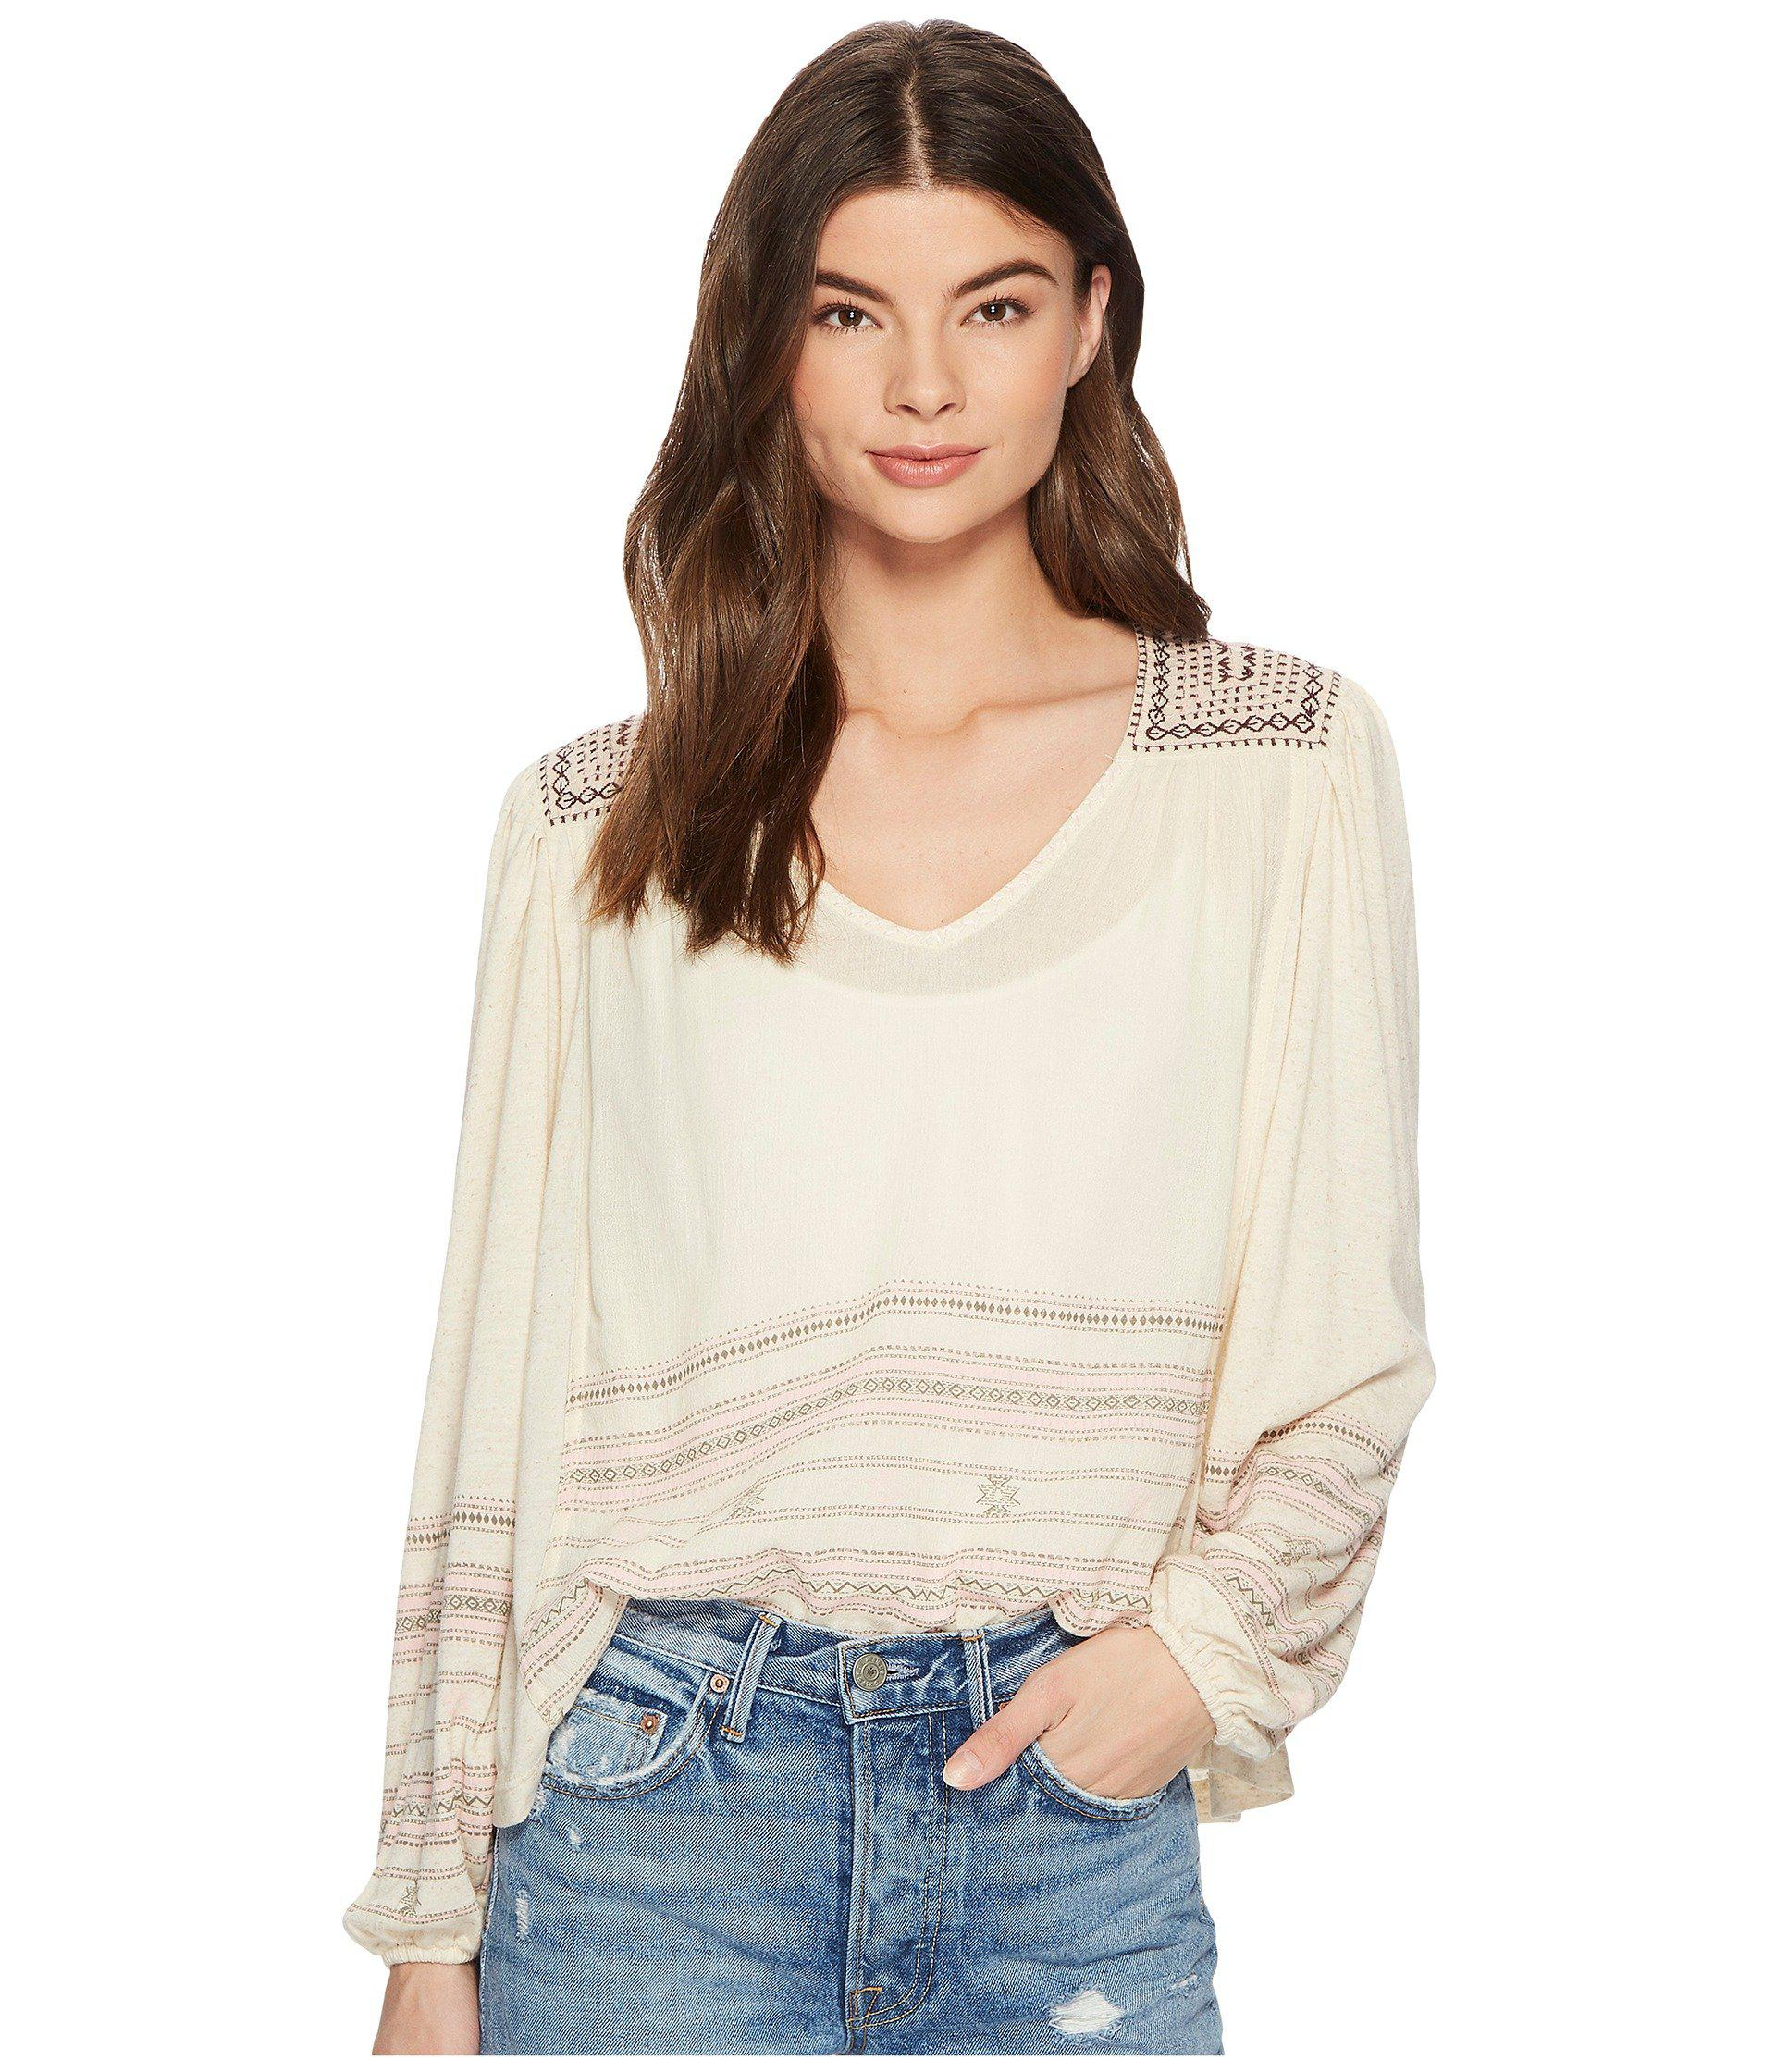 ed61e76581bd3 Lyst - Lucky Brand Market Embroidered Peasant Top in Natural - Save 12%